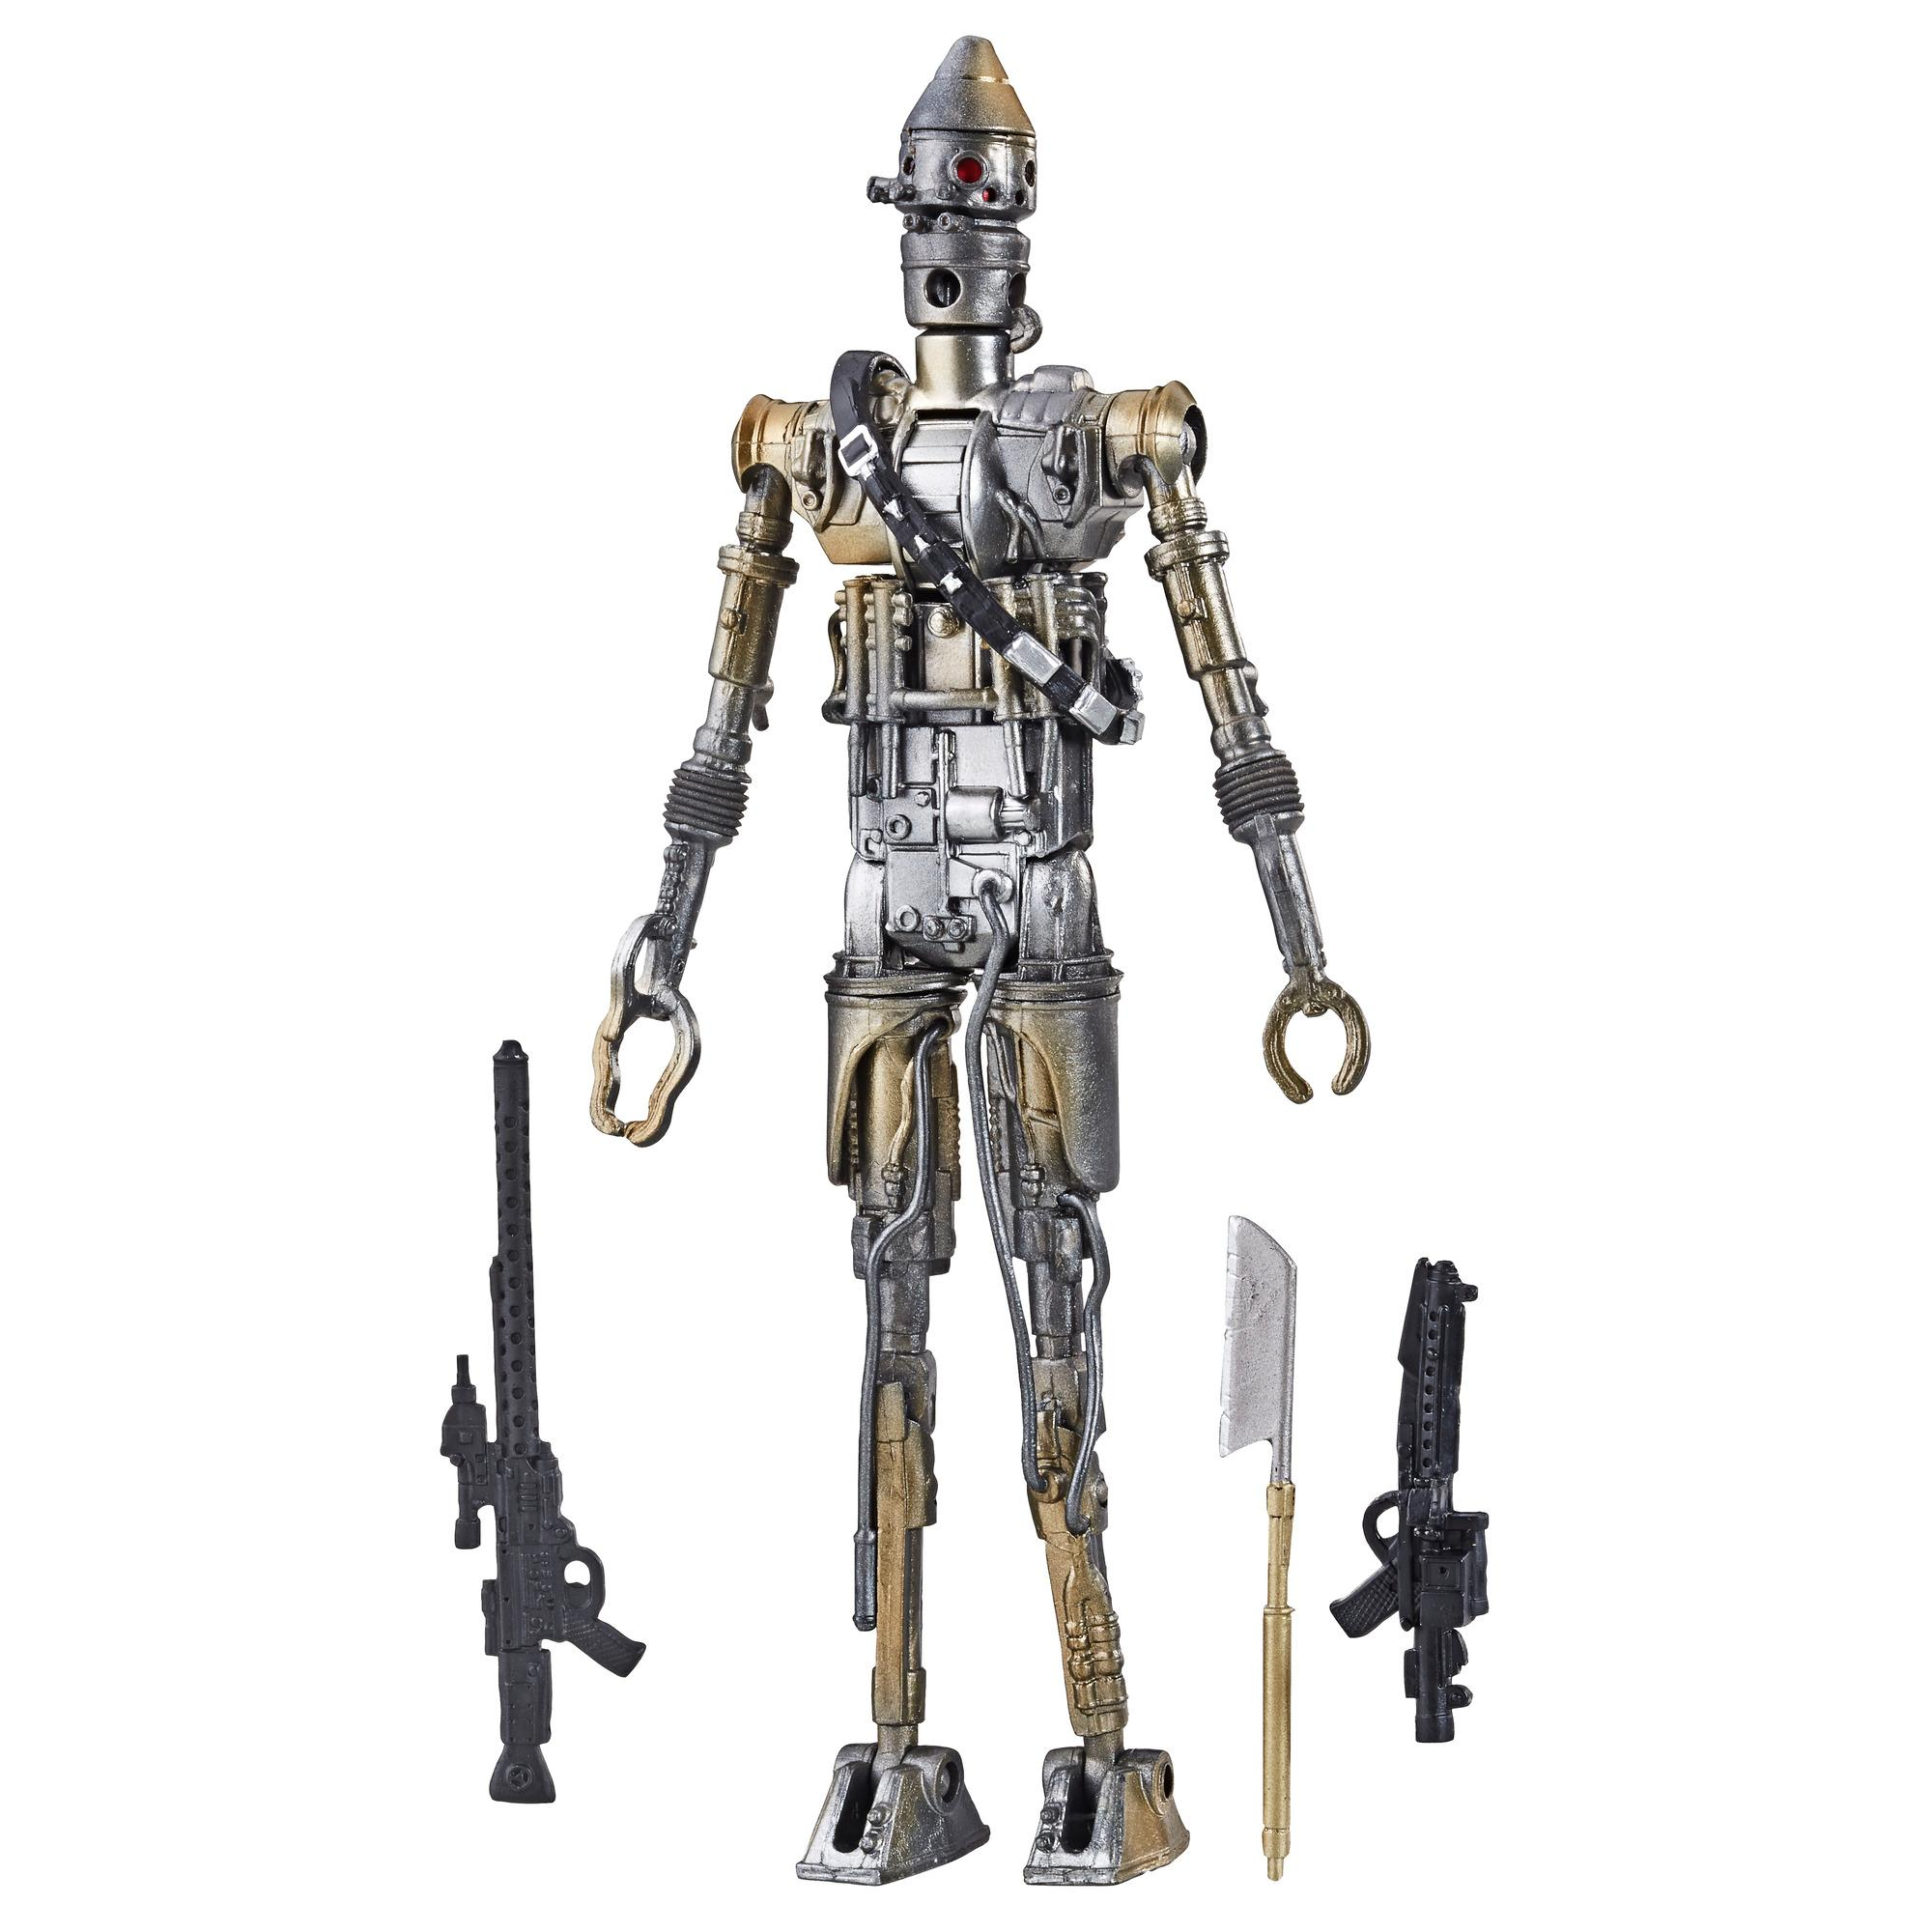 Star Wars The Black Series Archive - Figura de IG-88